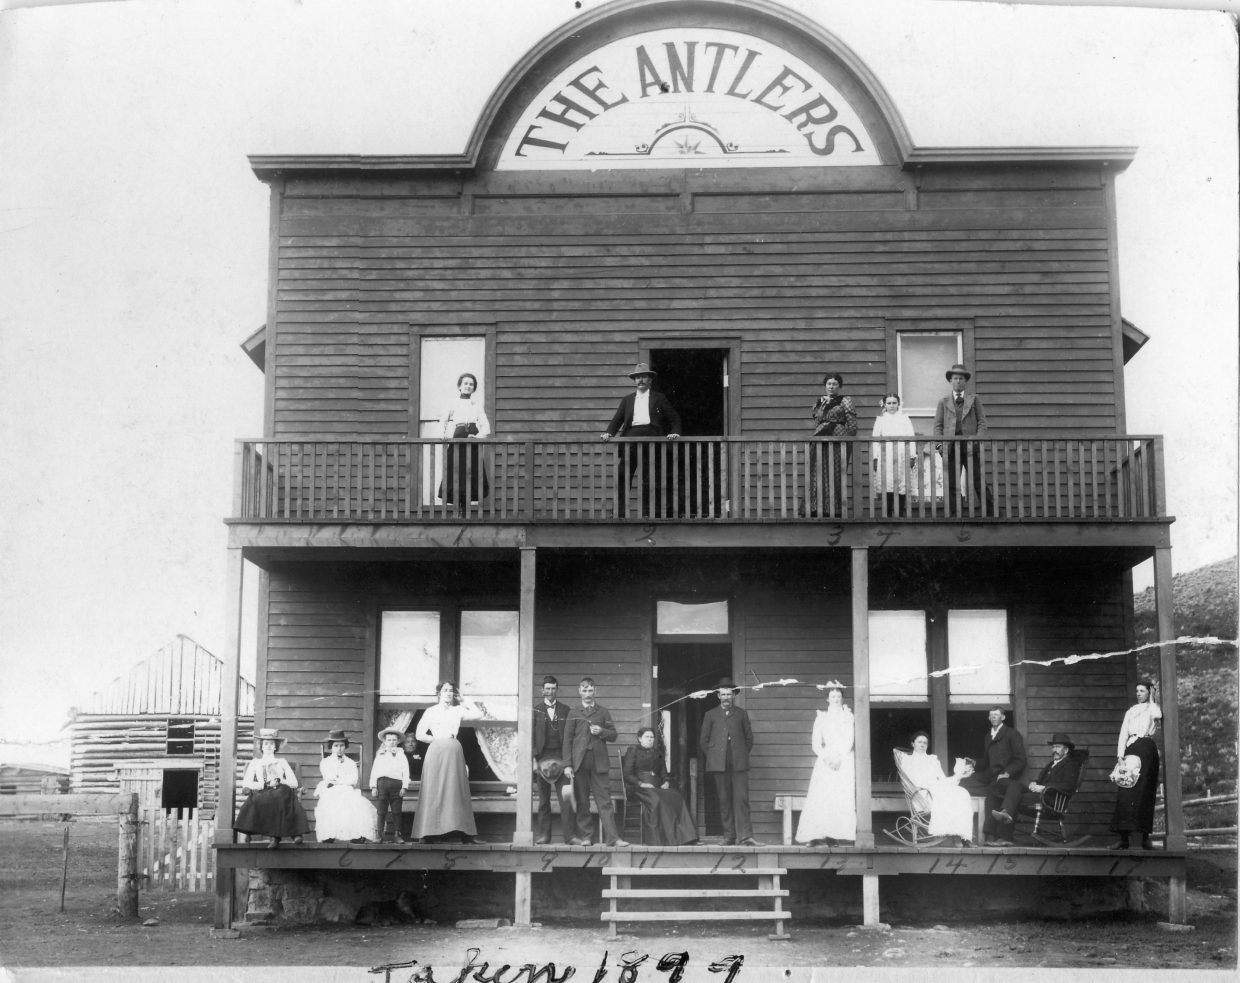 This photo, labeled as taken in 1899, shows the Antlers in its first stages, before wings were added to each side of the building on Moffat Avenue in Yampa. The current cafe and bar is the right wing of this original structure.